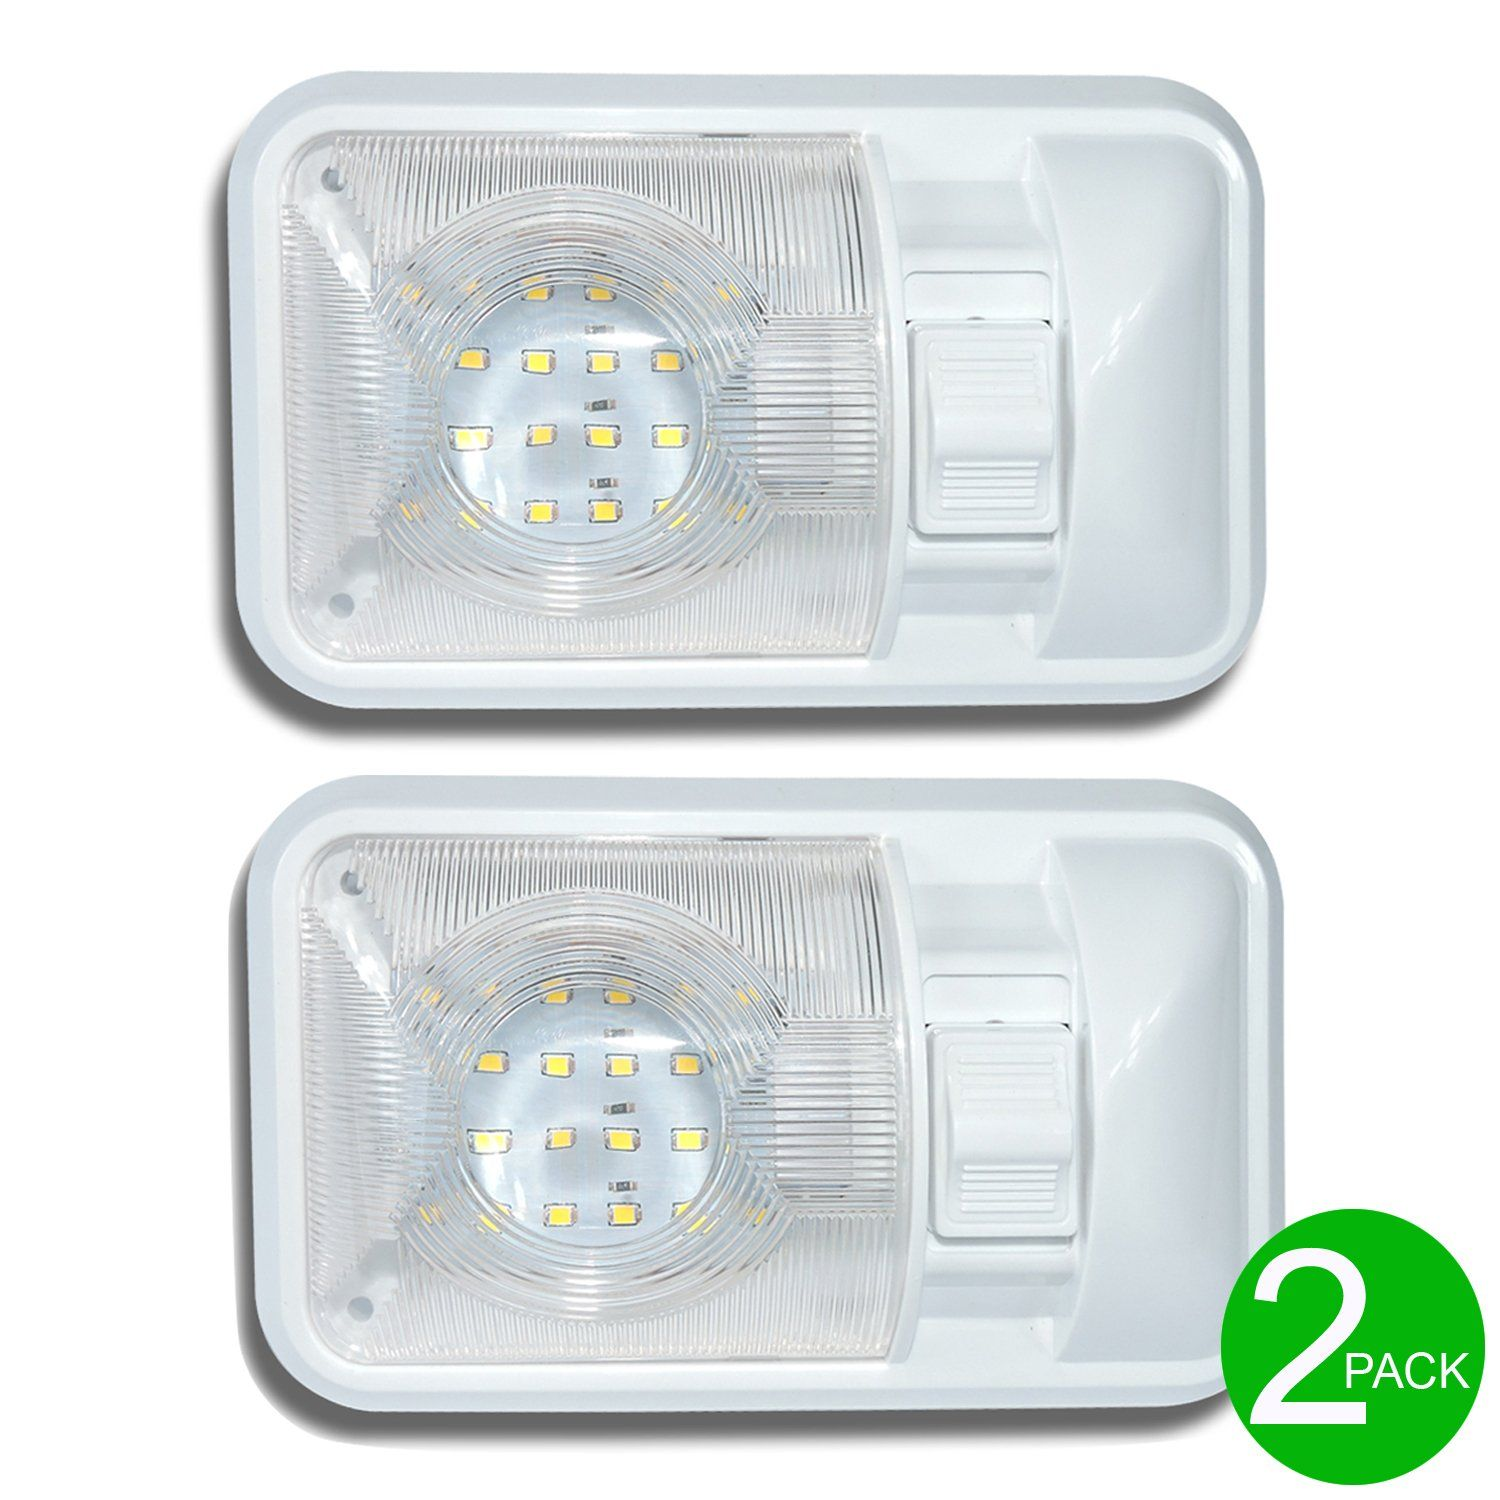 Leisure Led 2 Pack 12v Led Rv Ceiling Dome Light Rv Interior Lighting For Trailer Camper With Switch Single Dome Porch Lighting Rv Led Lights Led Porch Light